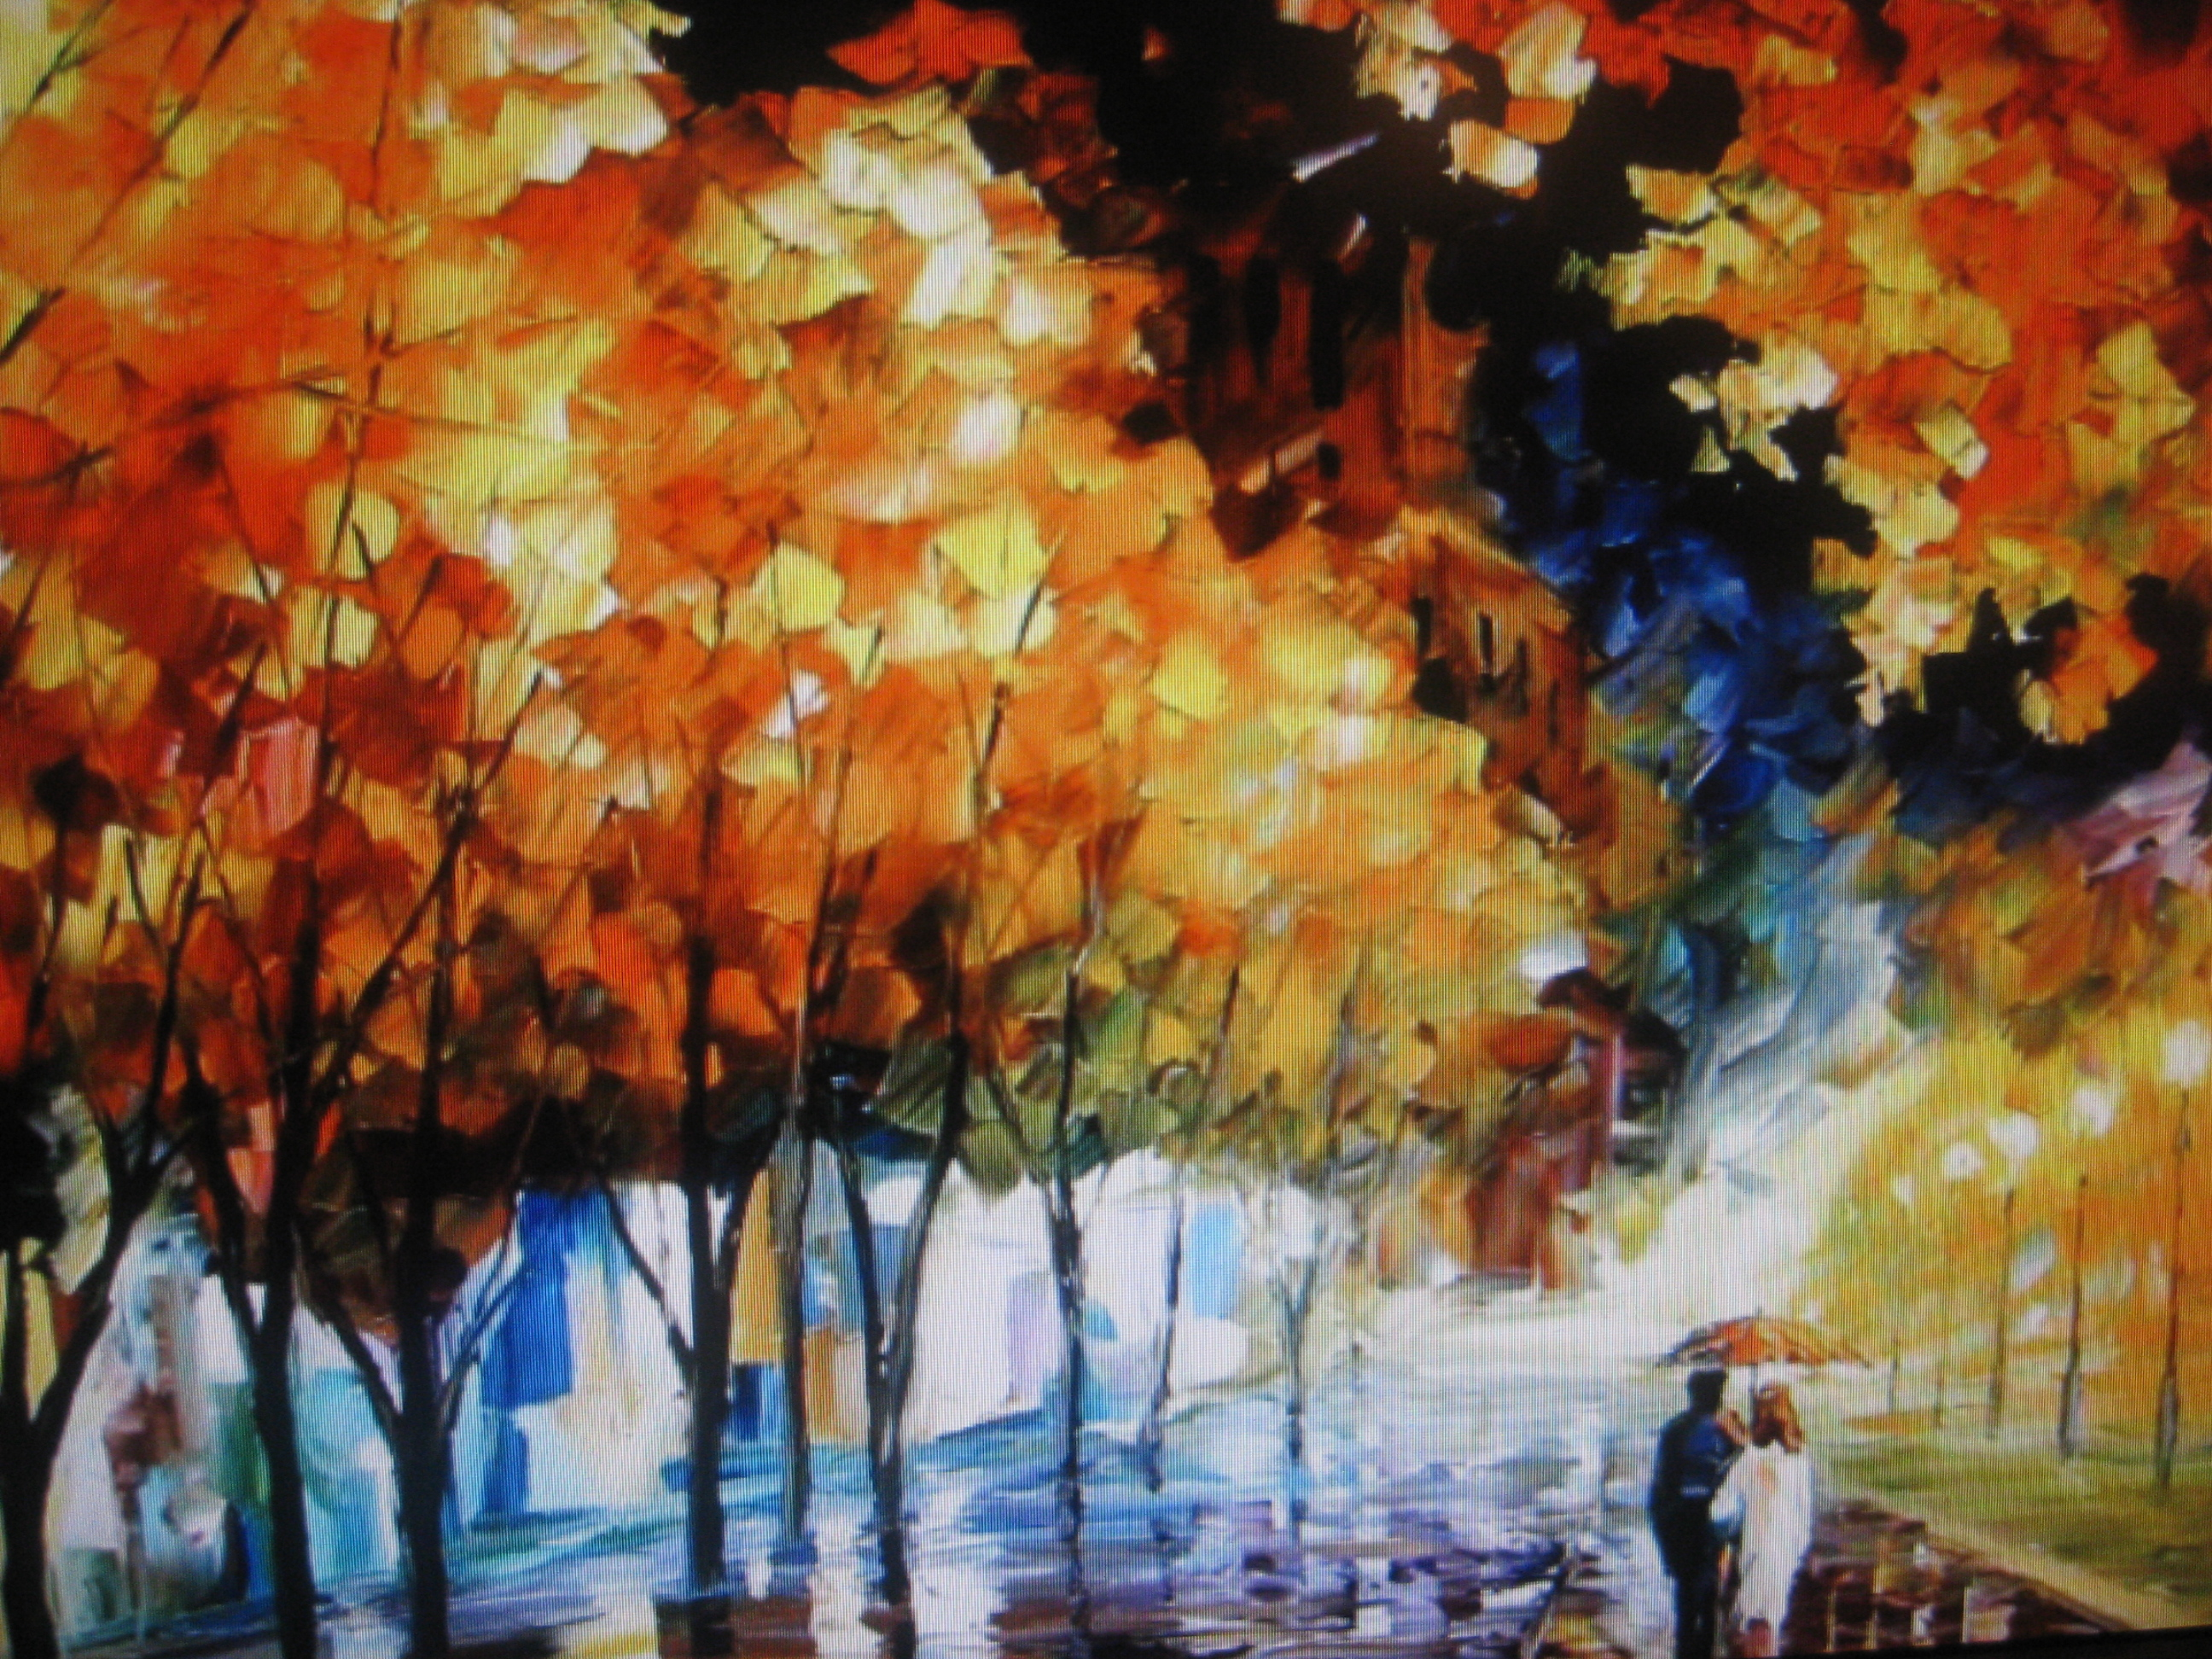 LEONID AFREMOV Project 365 2592x1944